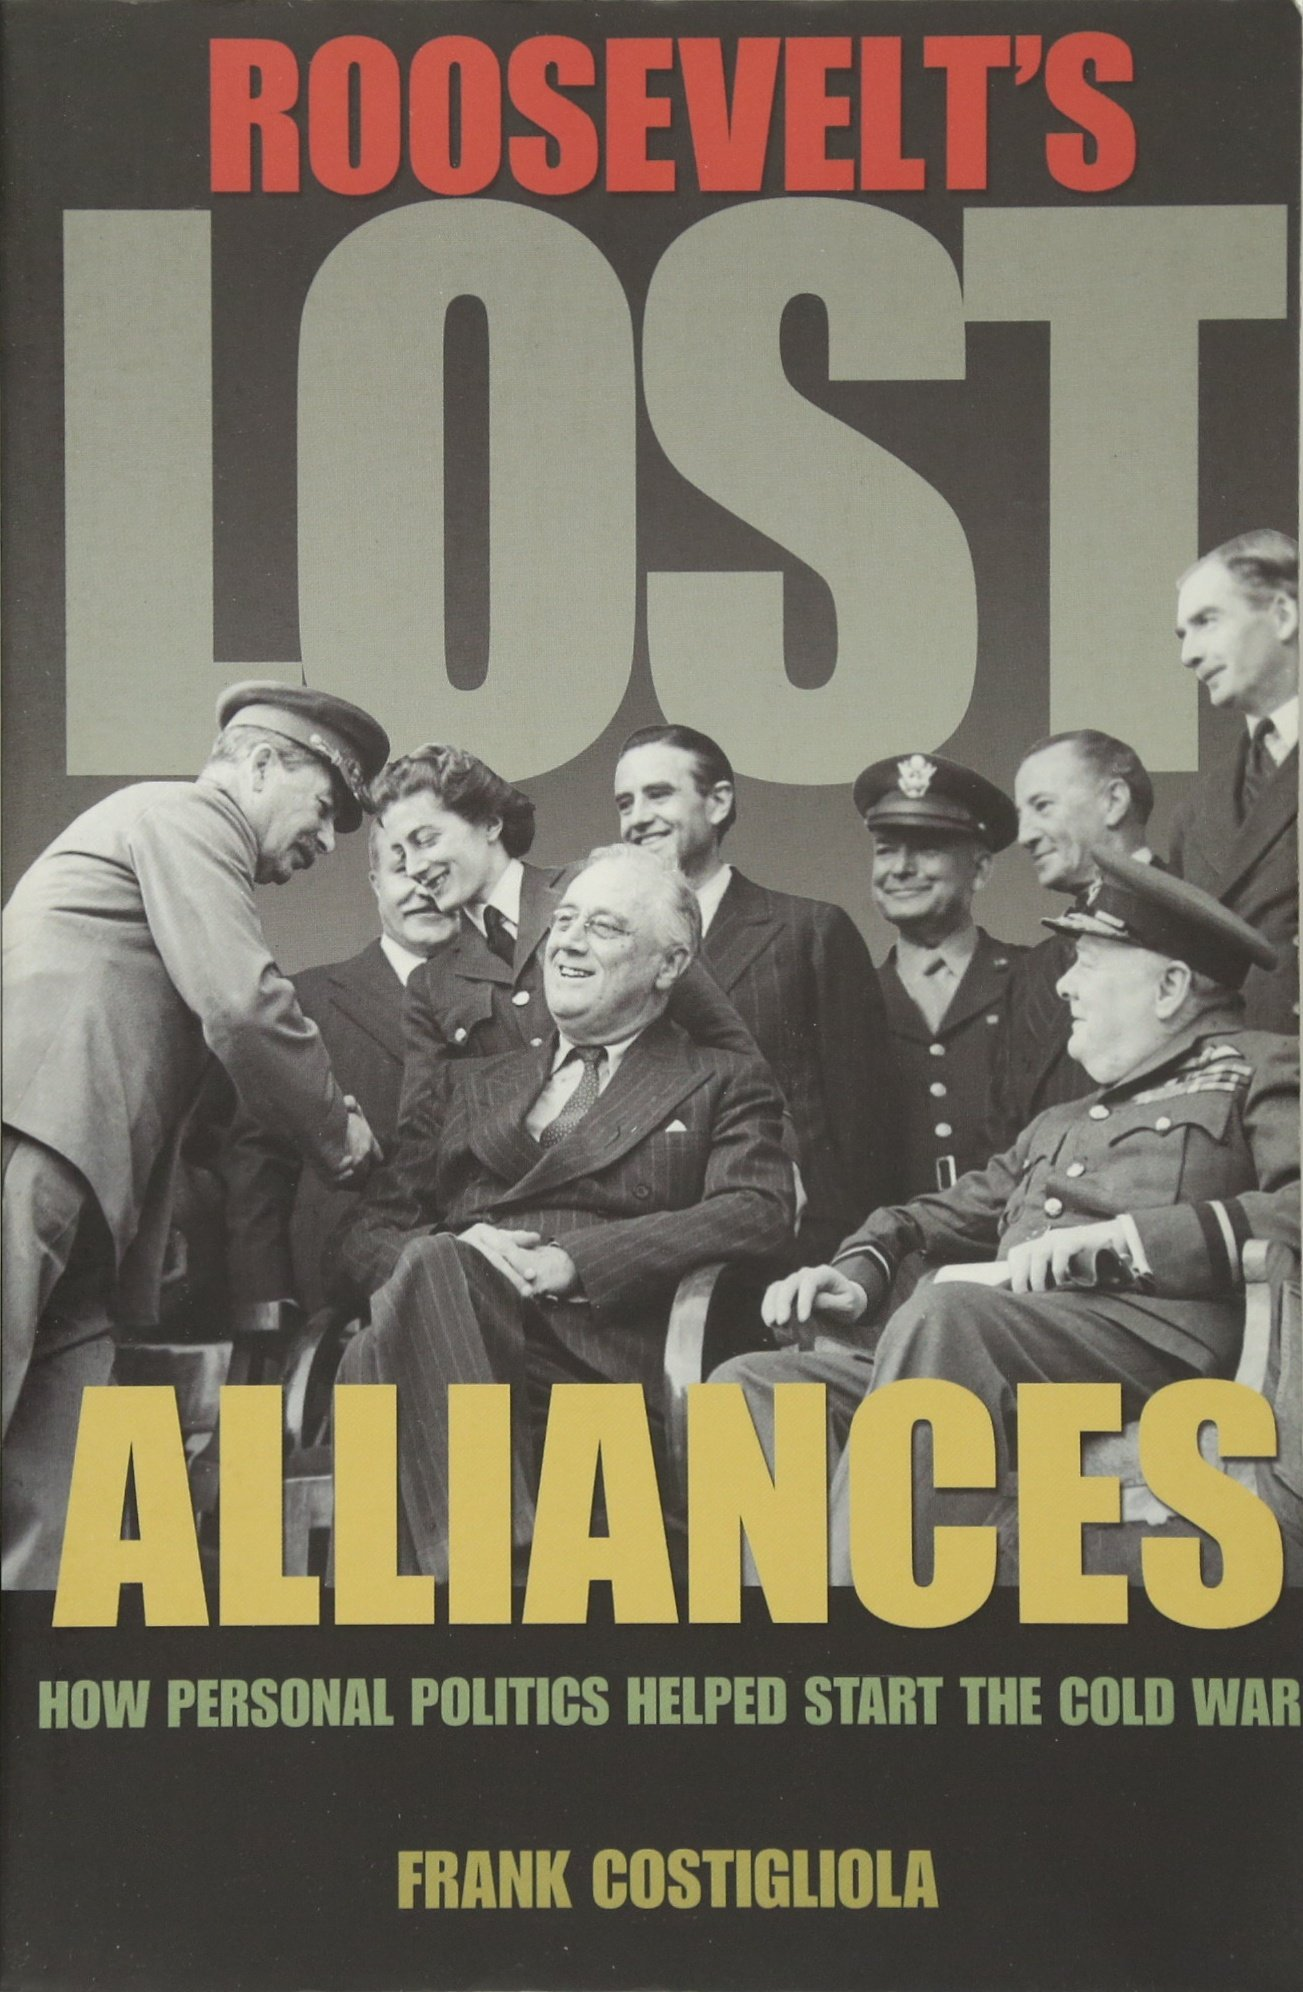 Roosevelt's Lost Alliances: How Personal Politics Helped Start the Cold  War: Frank Costigliola: 9780691157924: Amazon.com: Books